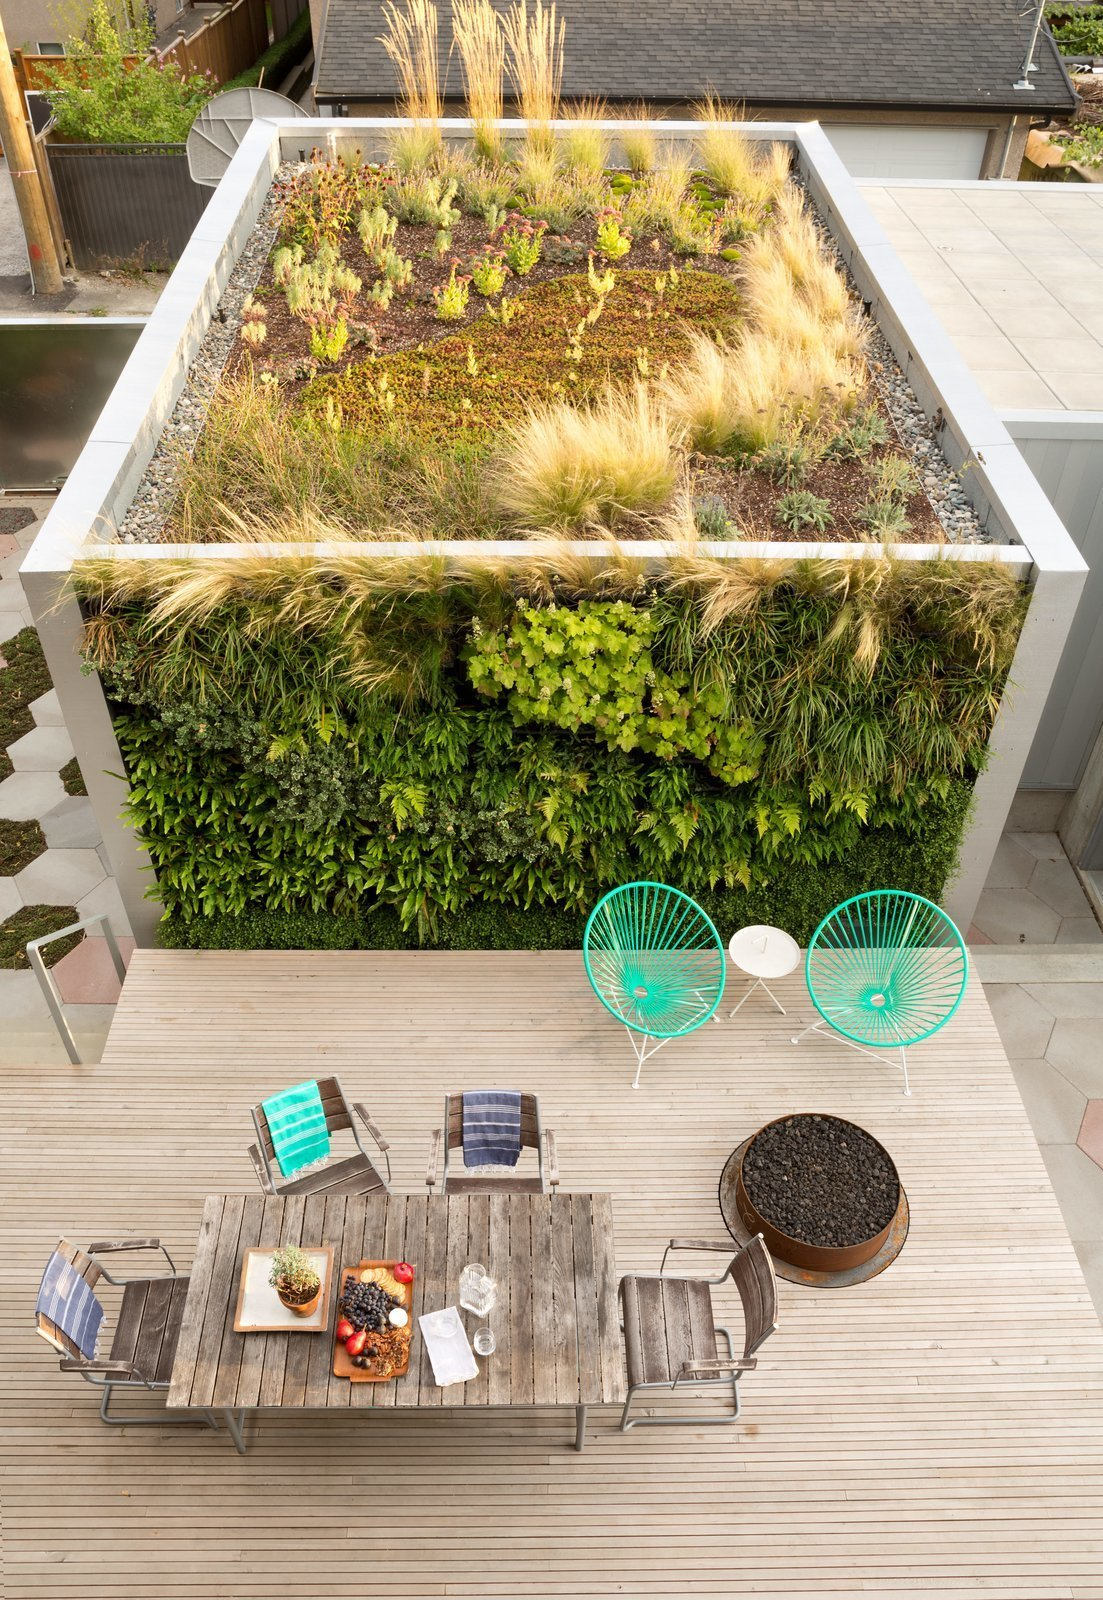 Cloaked in local flora on two side with a grassy roof garden on top, this galvanized box serve as a home studio for jewellery designer in Vancouver.